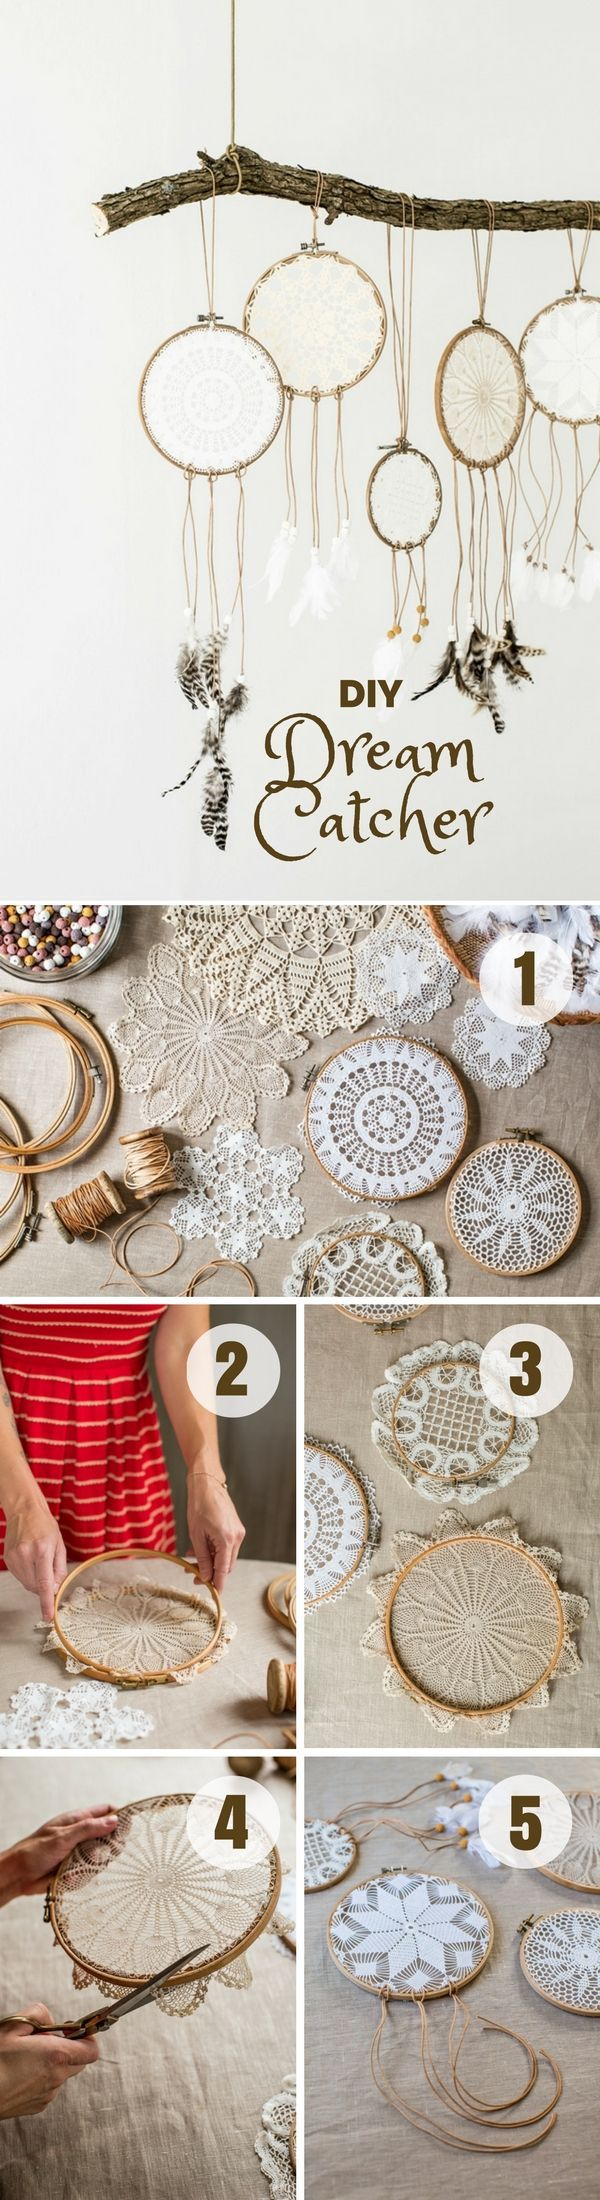 Check out how to easily make this DIY Dream Catcher @Industry Standard Design